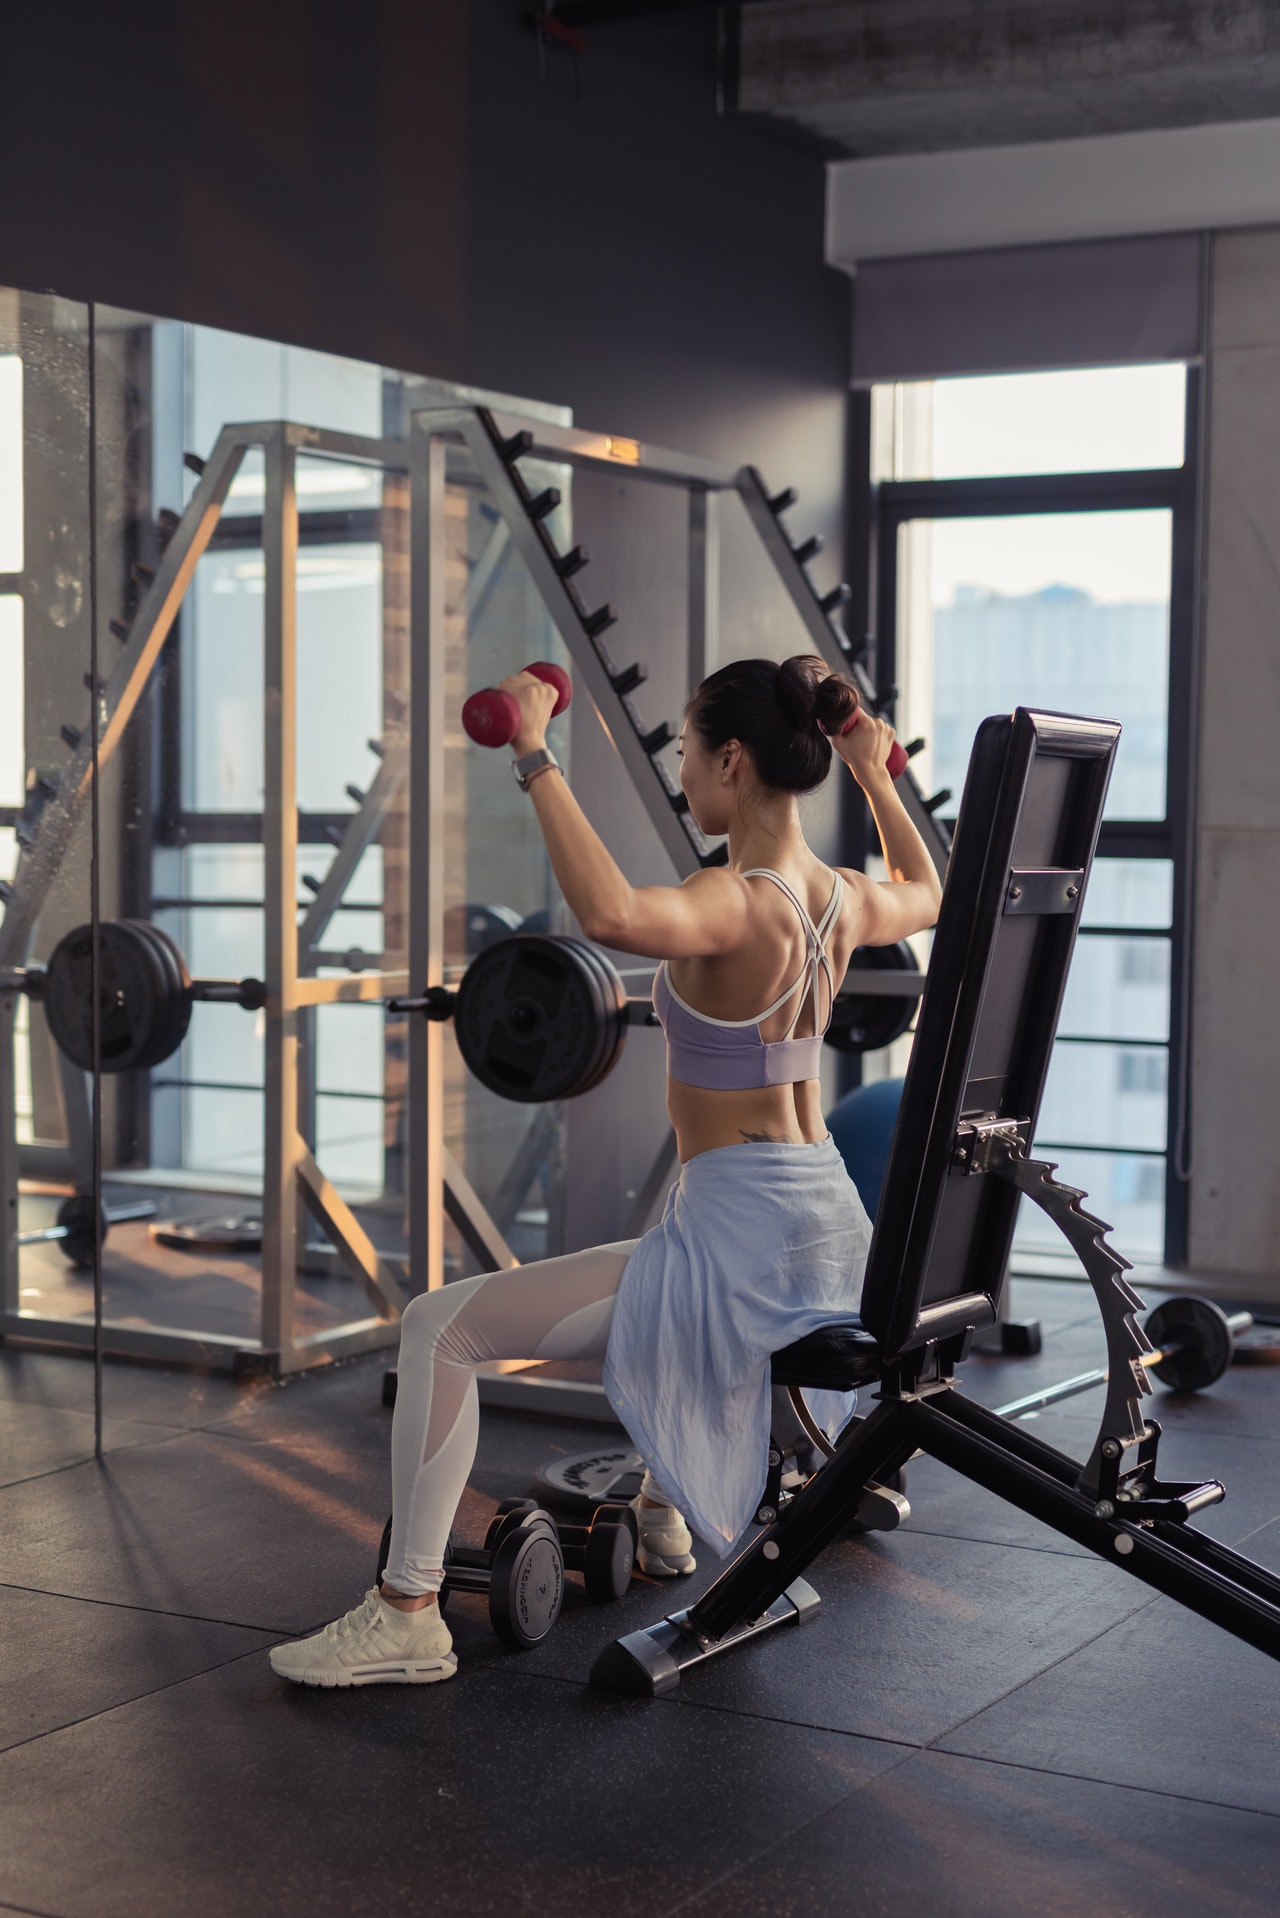 10 Ways to Get the Most Out of Your Workout